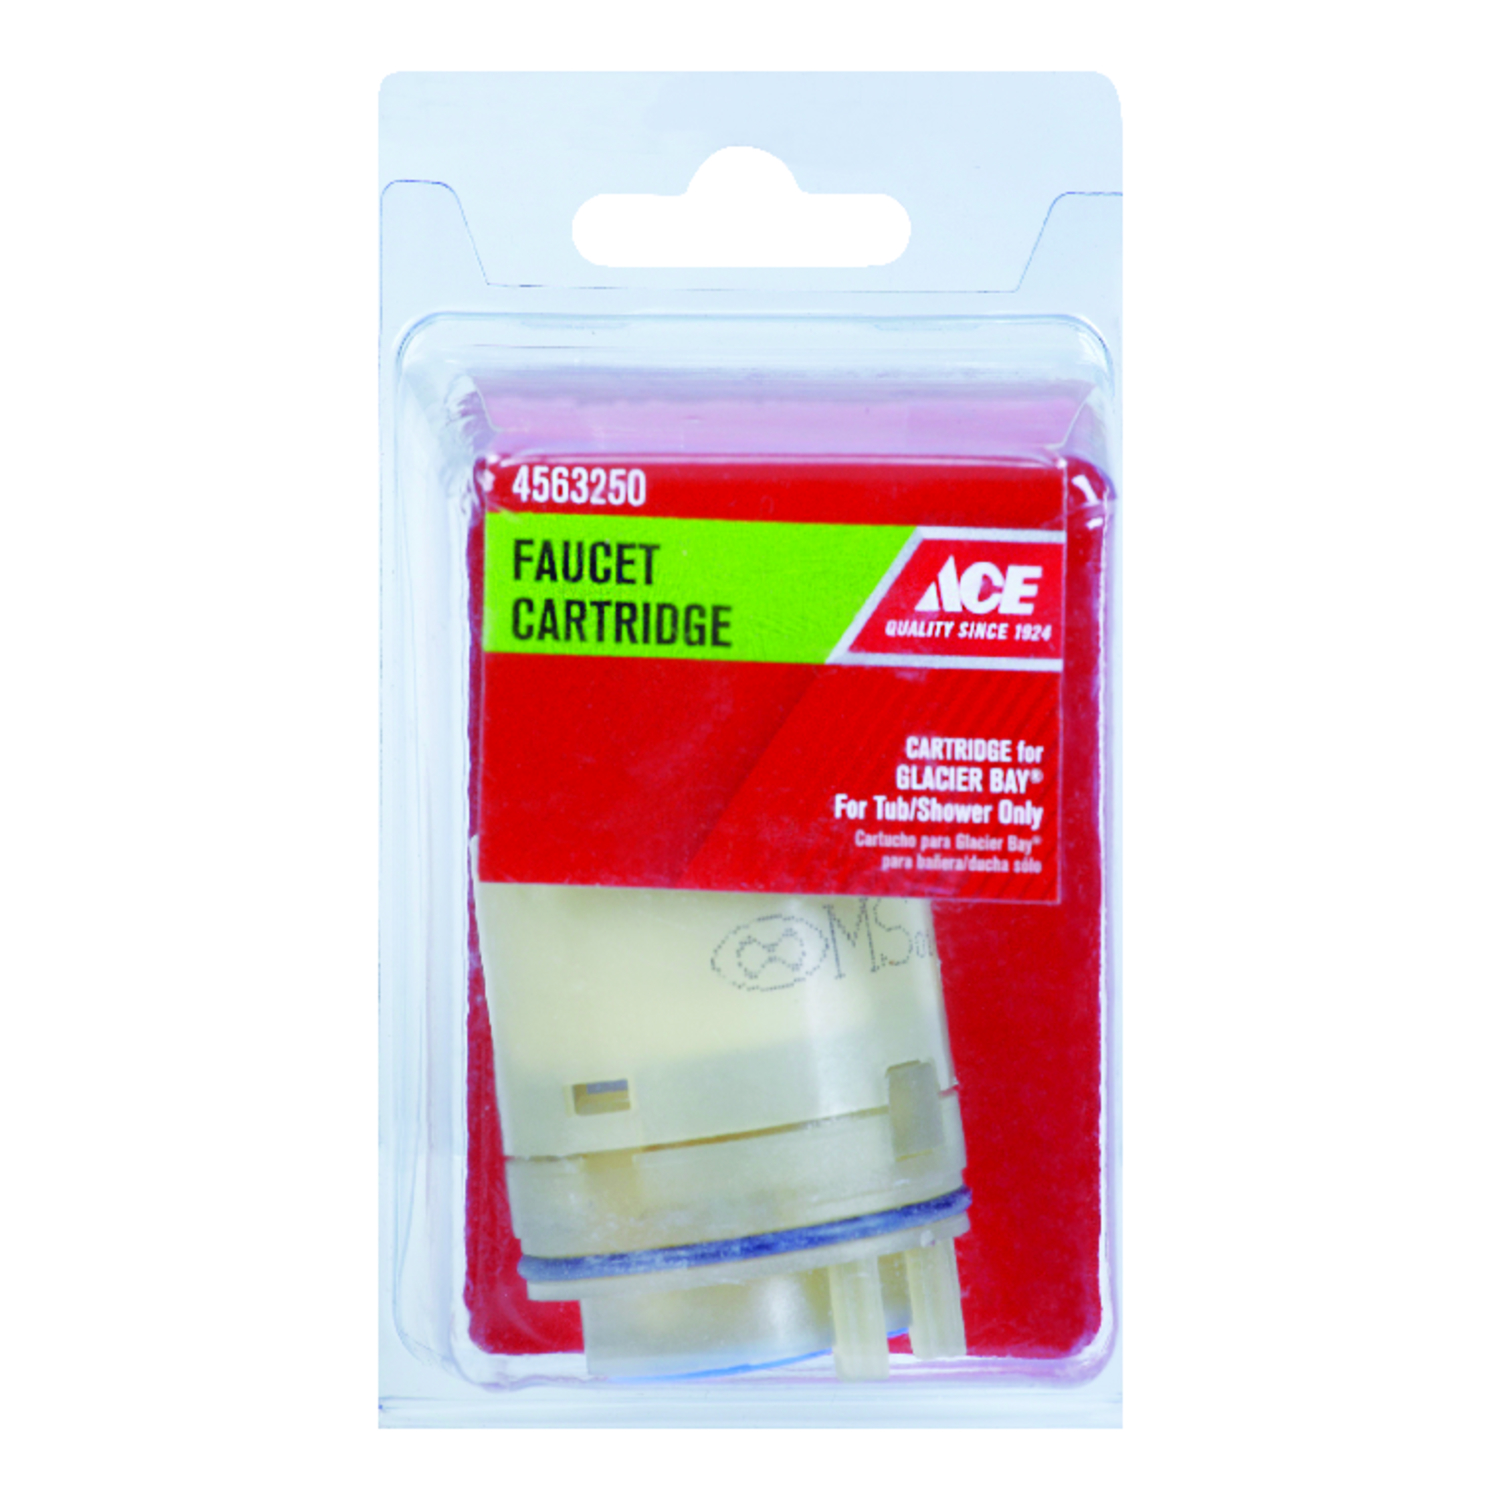 Ace Hot And Cold Faucet Cartridge For Glacier Bay Ace Hardware